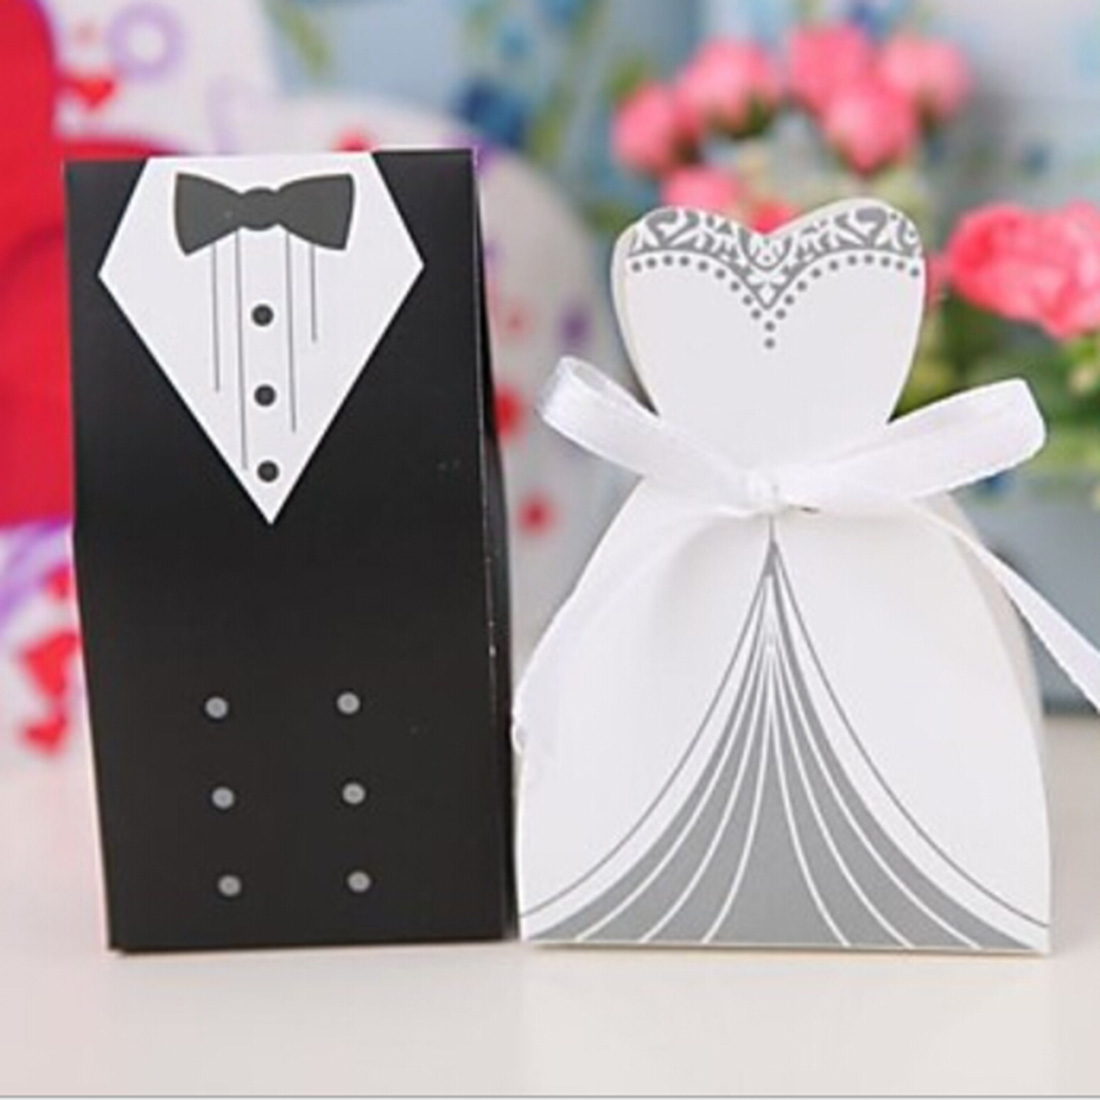 how much does it cost to clean and preserve a wedding dress preserving wedding dress Average Cost To Clean And Preserve Wedding Dress Dresses